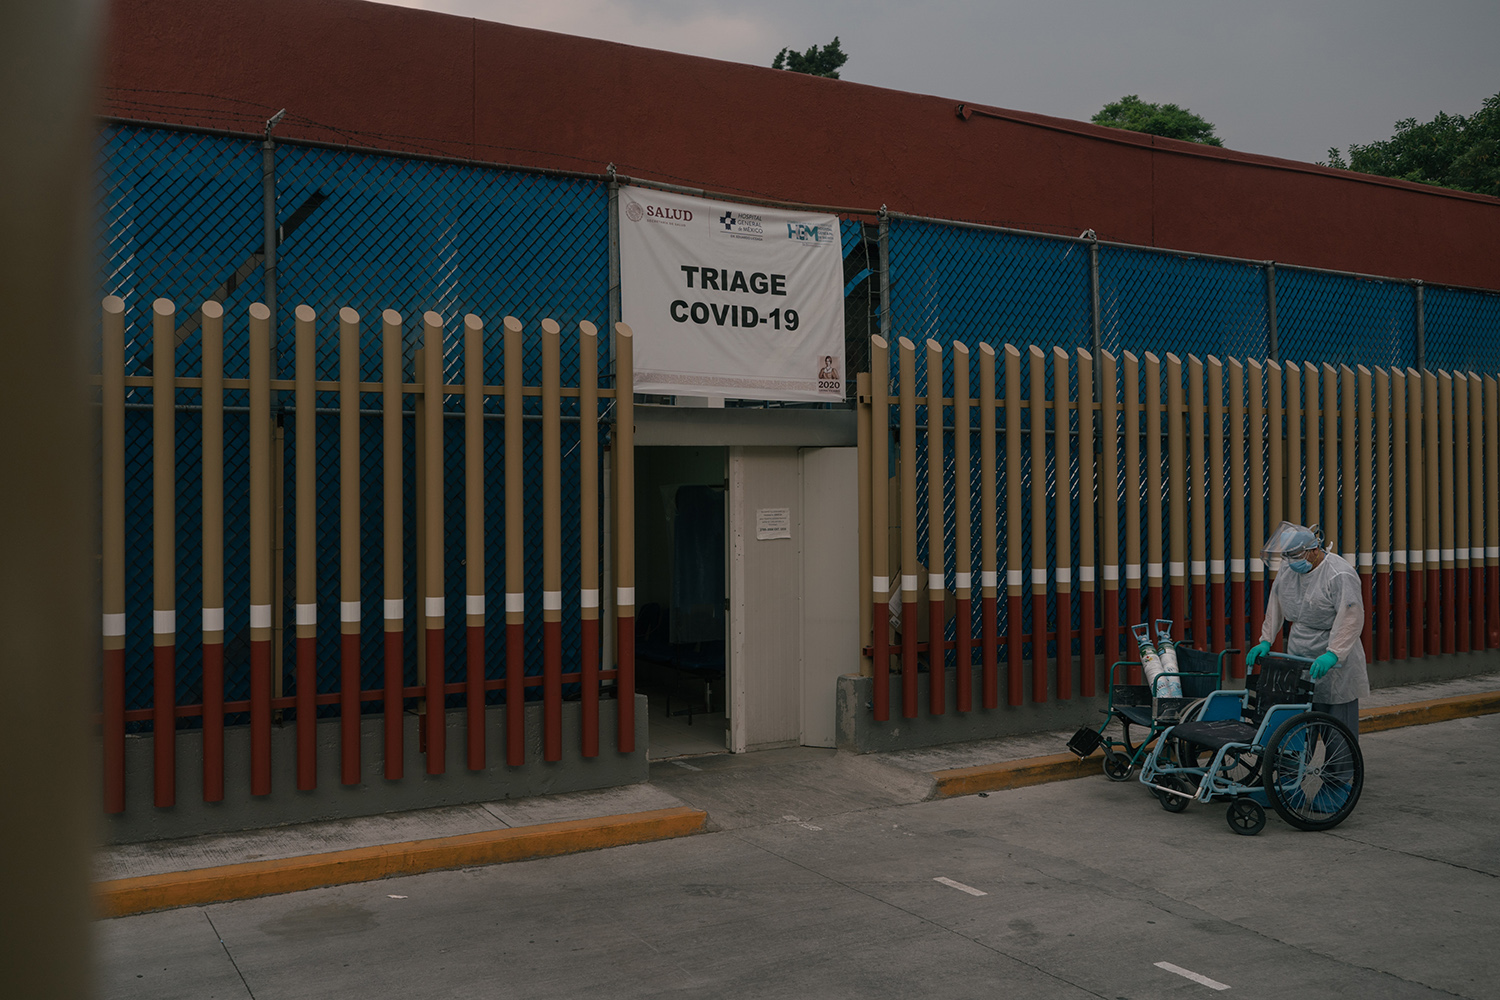 A hospital worker waits outside a COVID-19 triage unit at the General Hospital of Mexico in Mexico City on May 21.